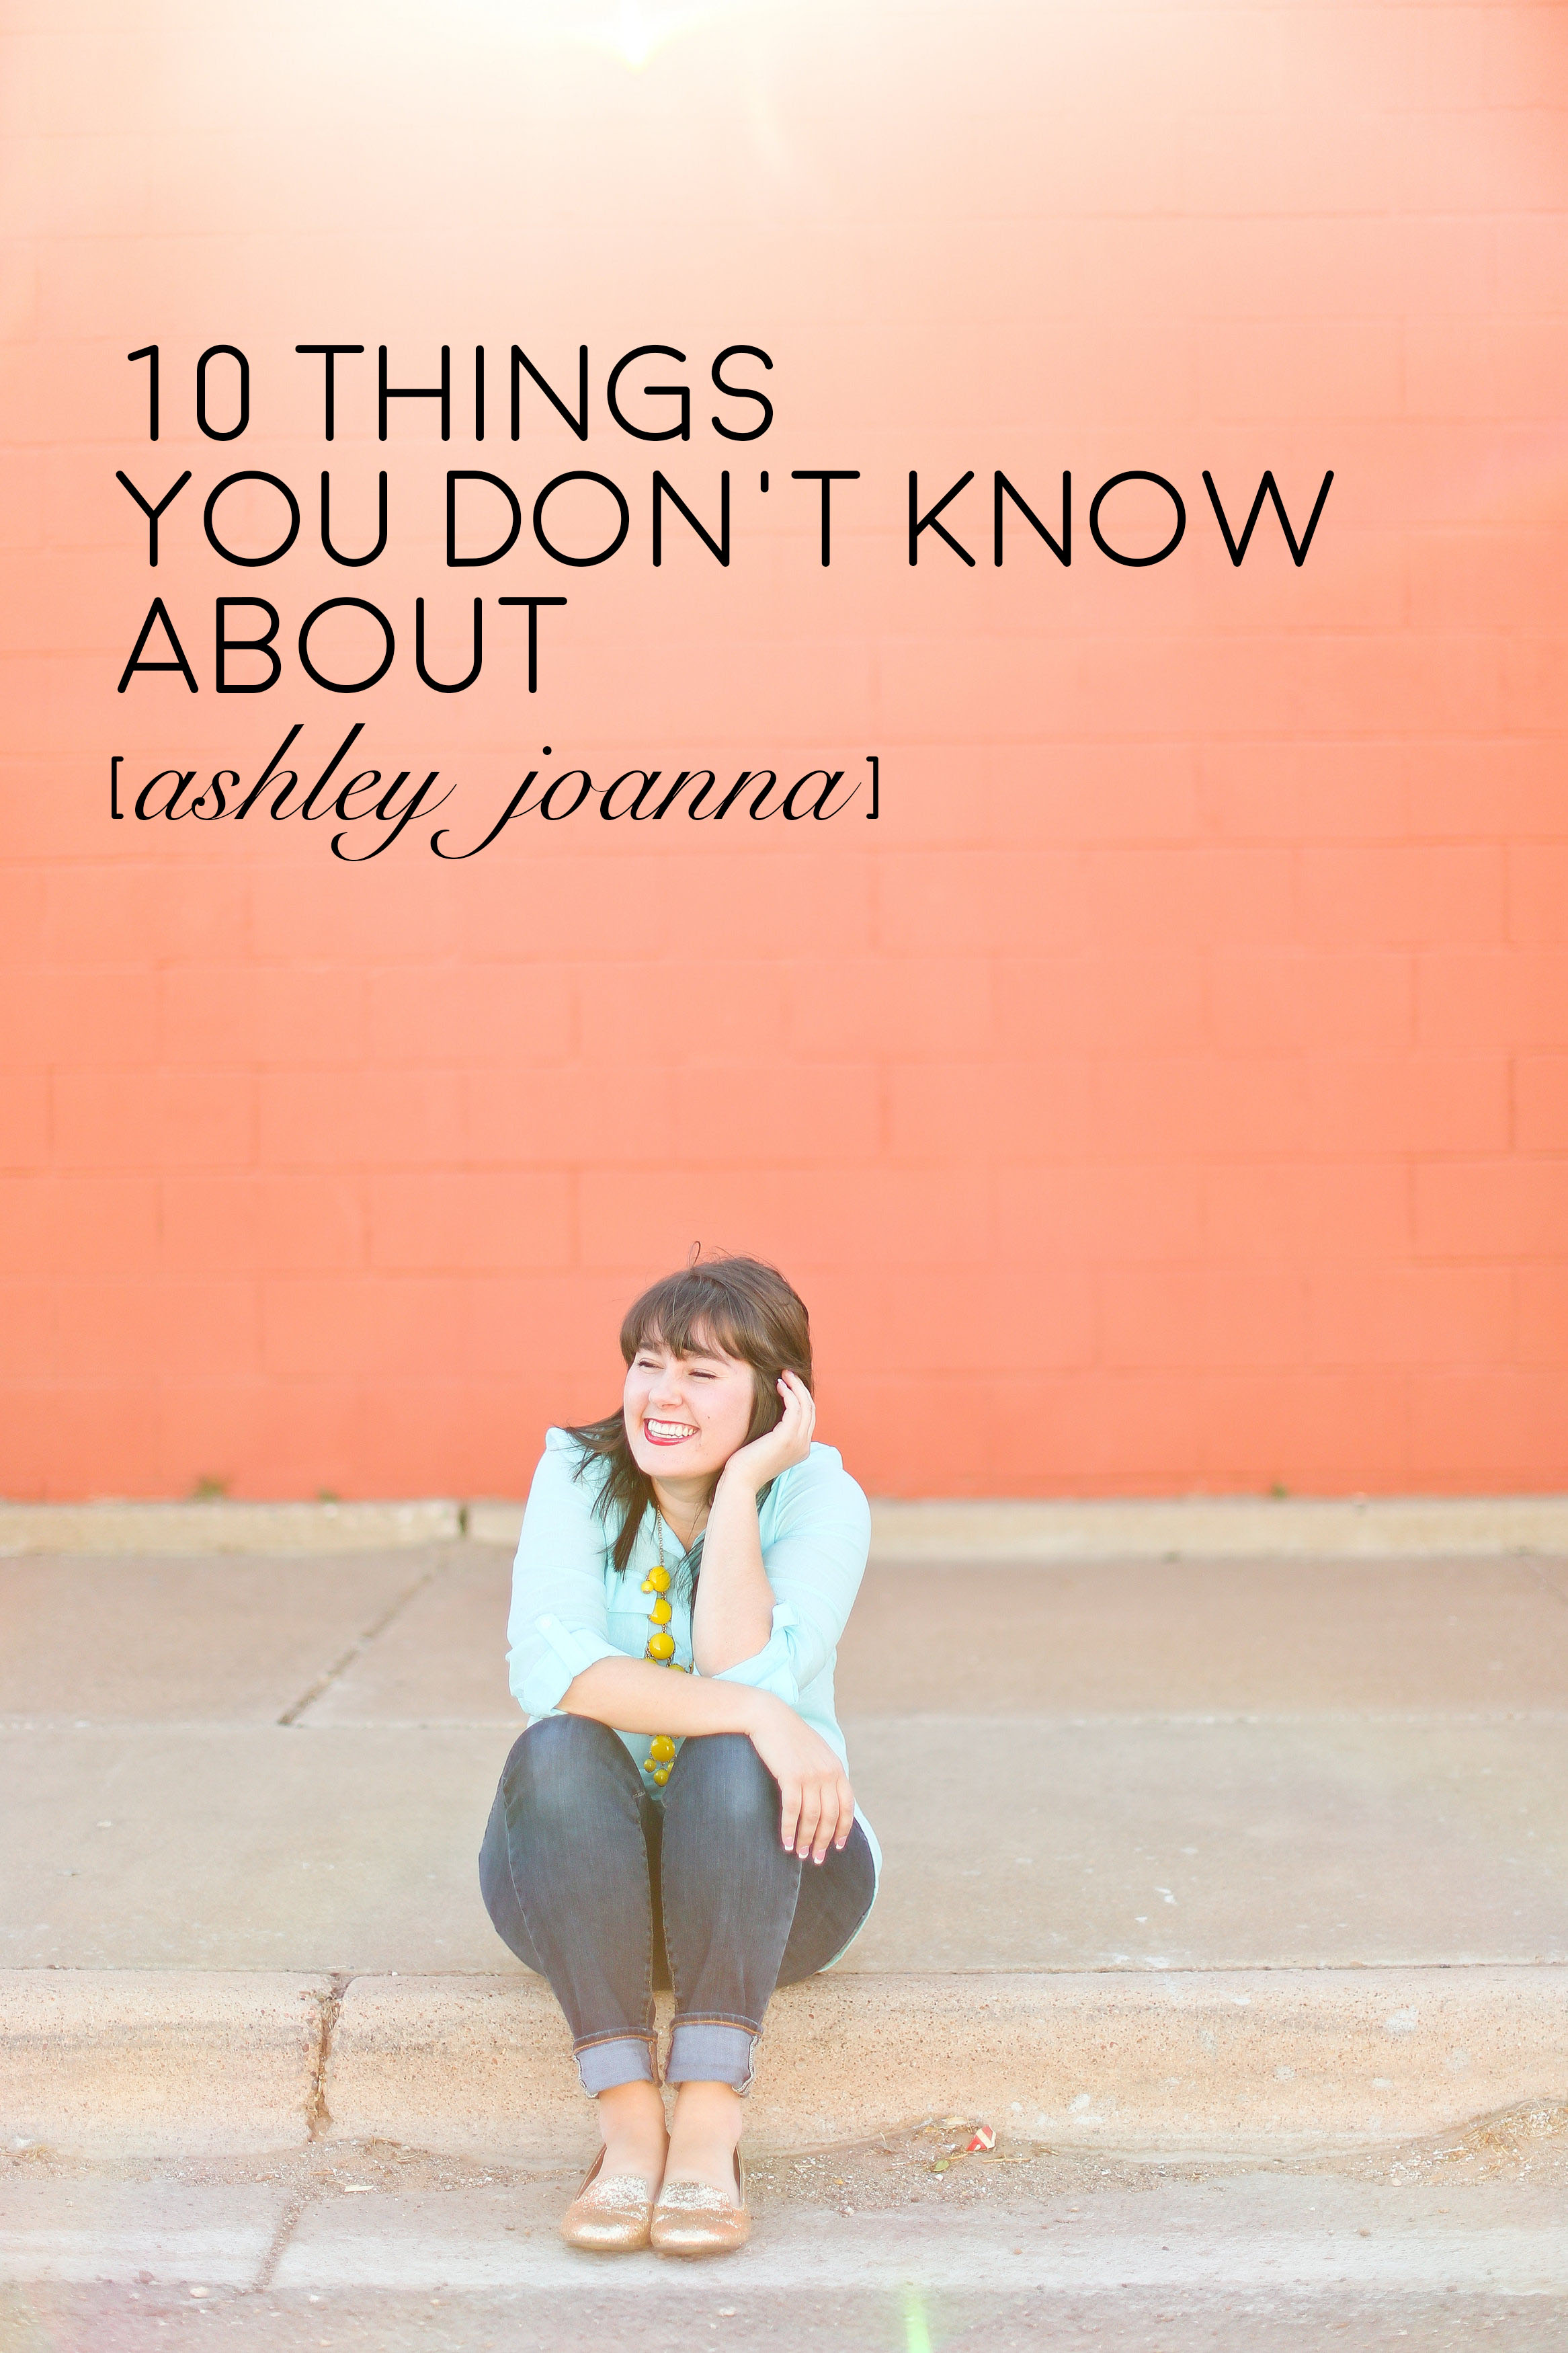 10 Things You Don't Know About Ashley Joanna